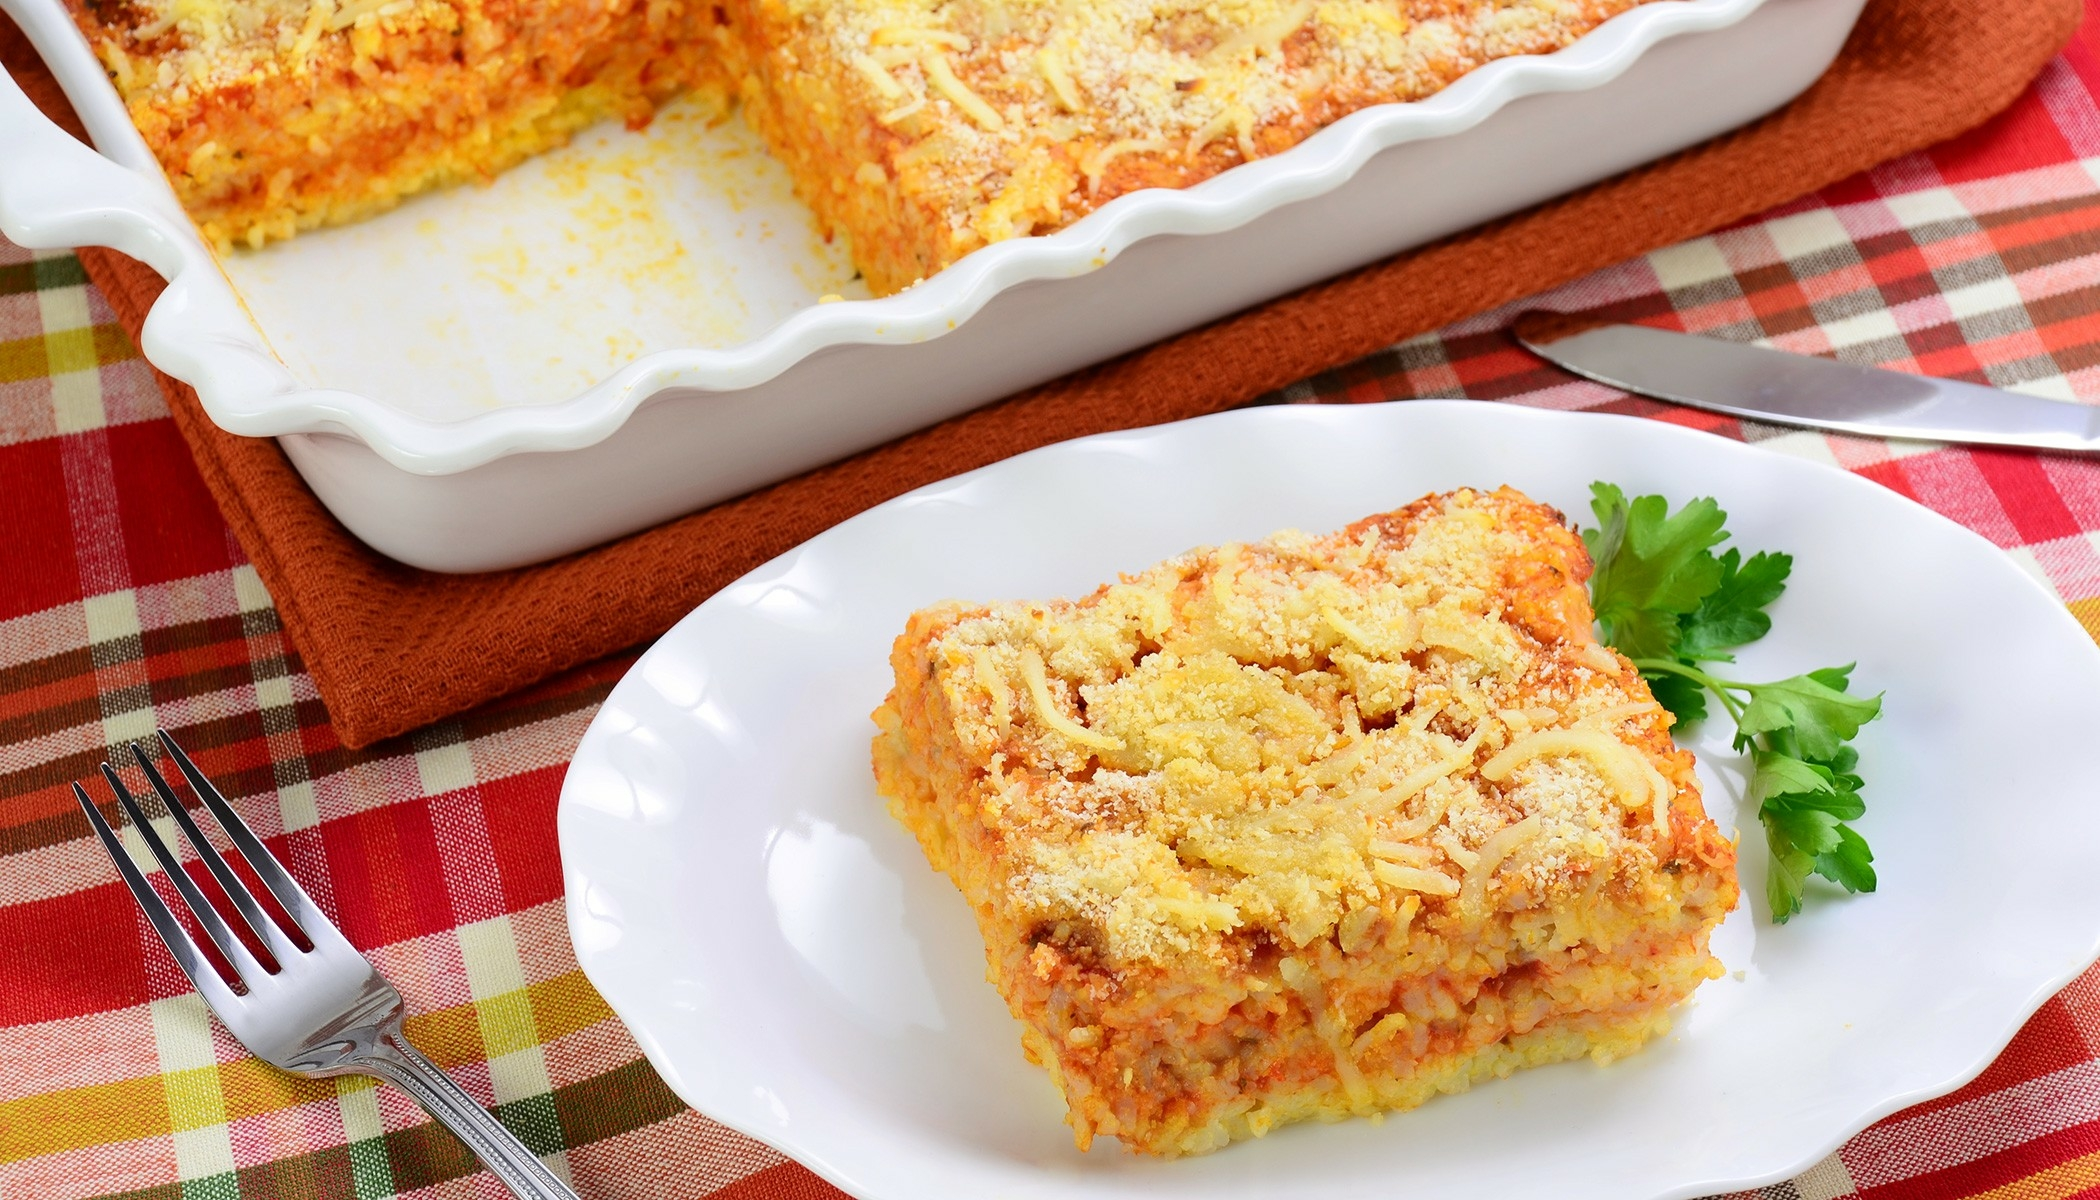 Baked Risotto Lasagna Style